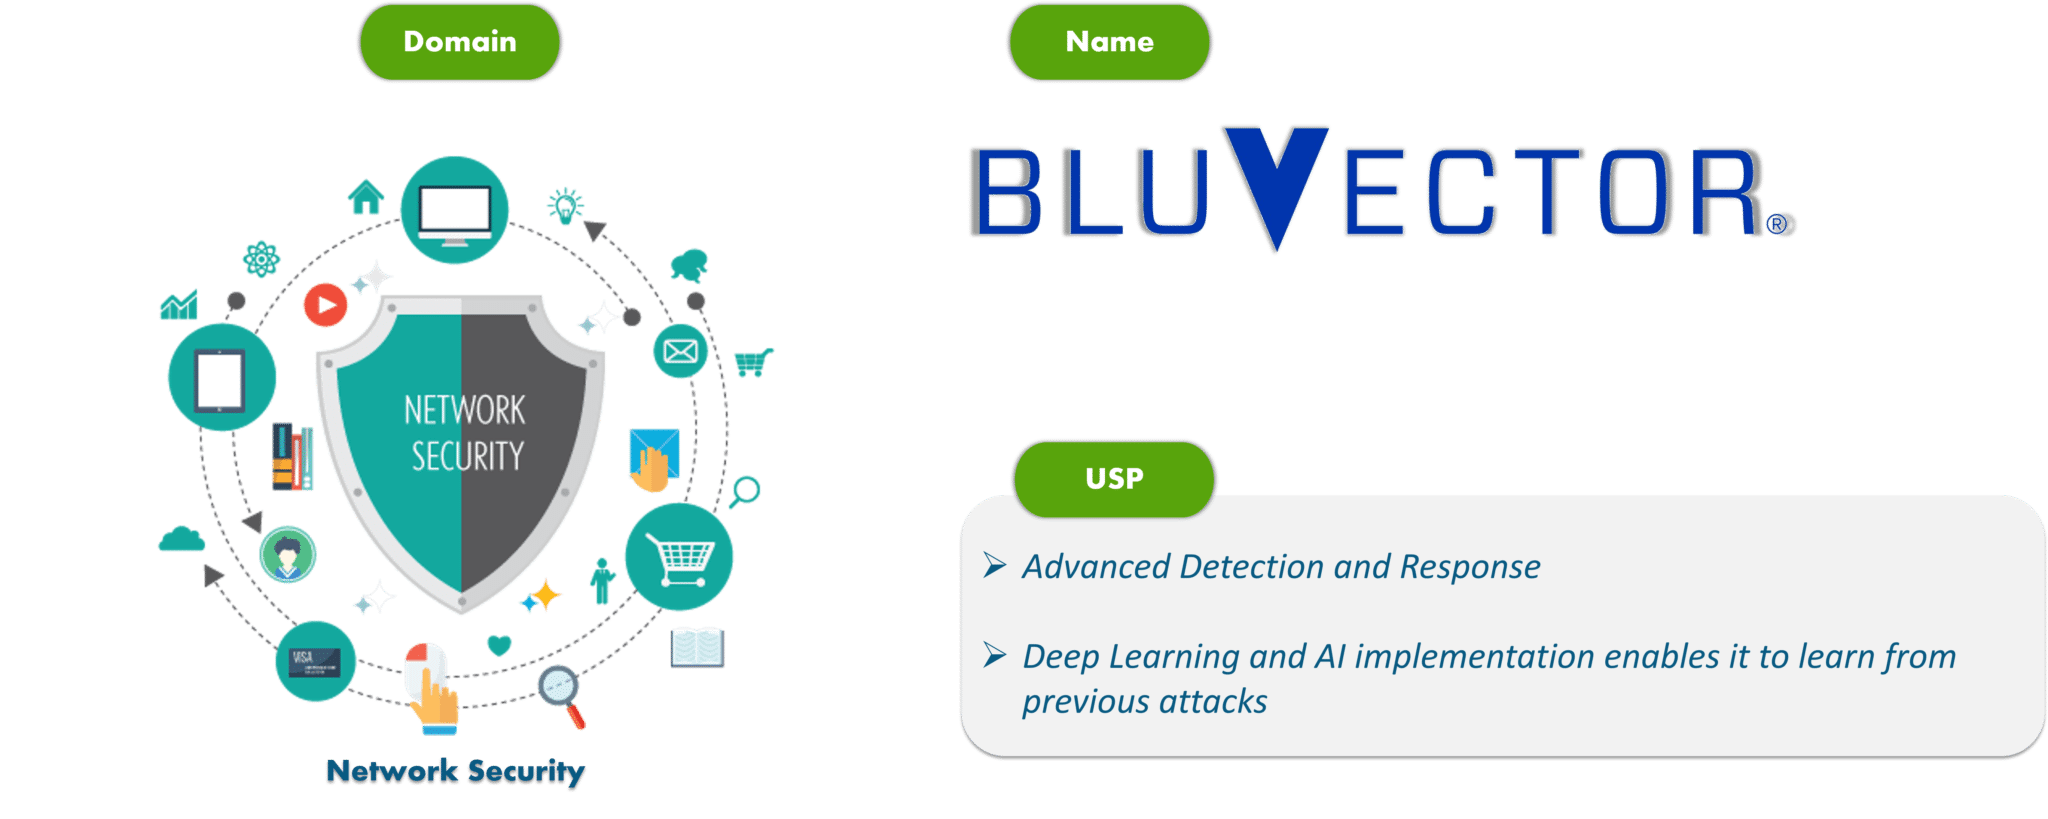 Bluvector - Cybersecurity Tools - Edureka